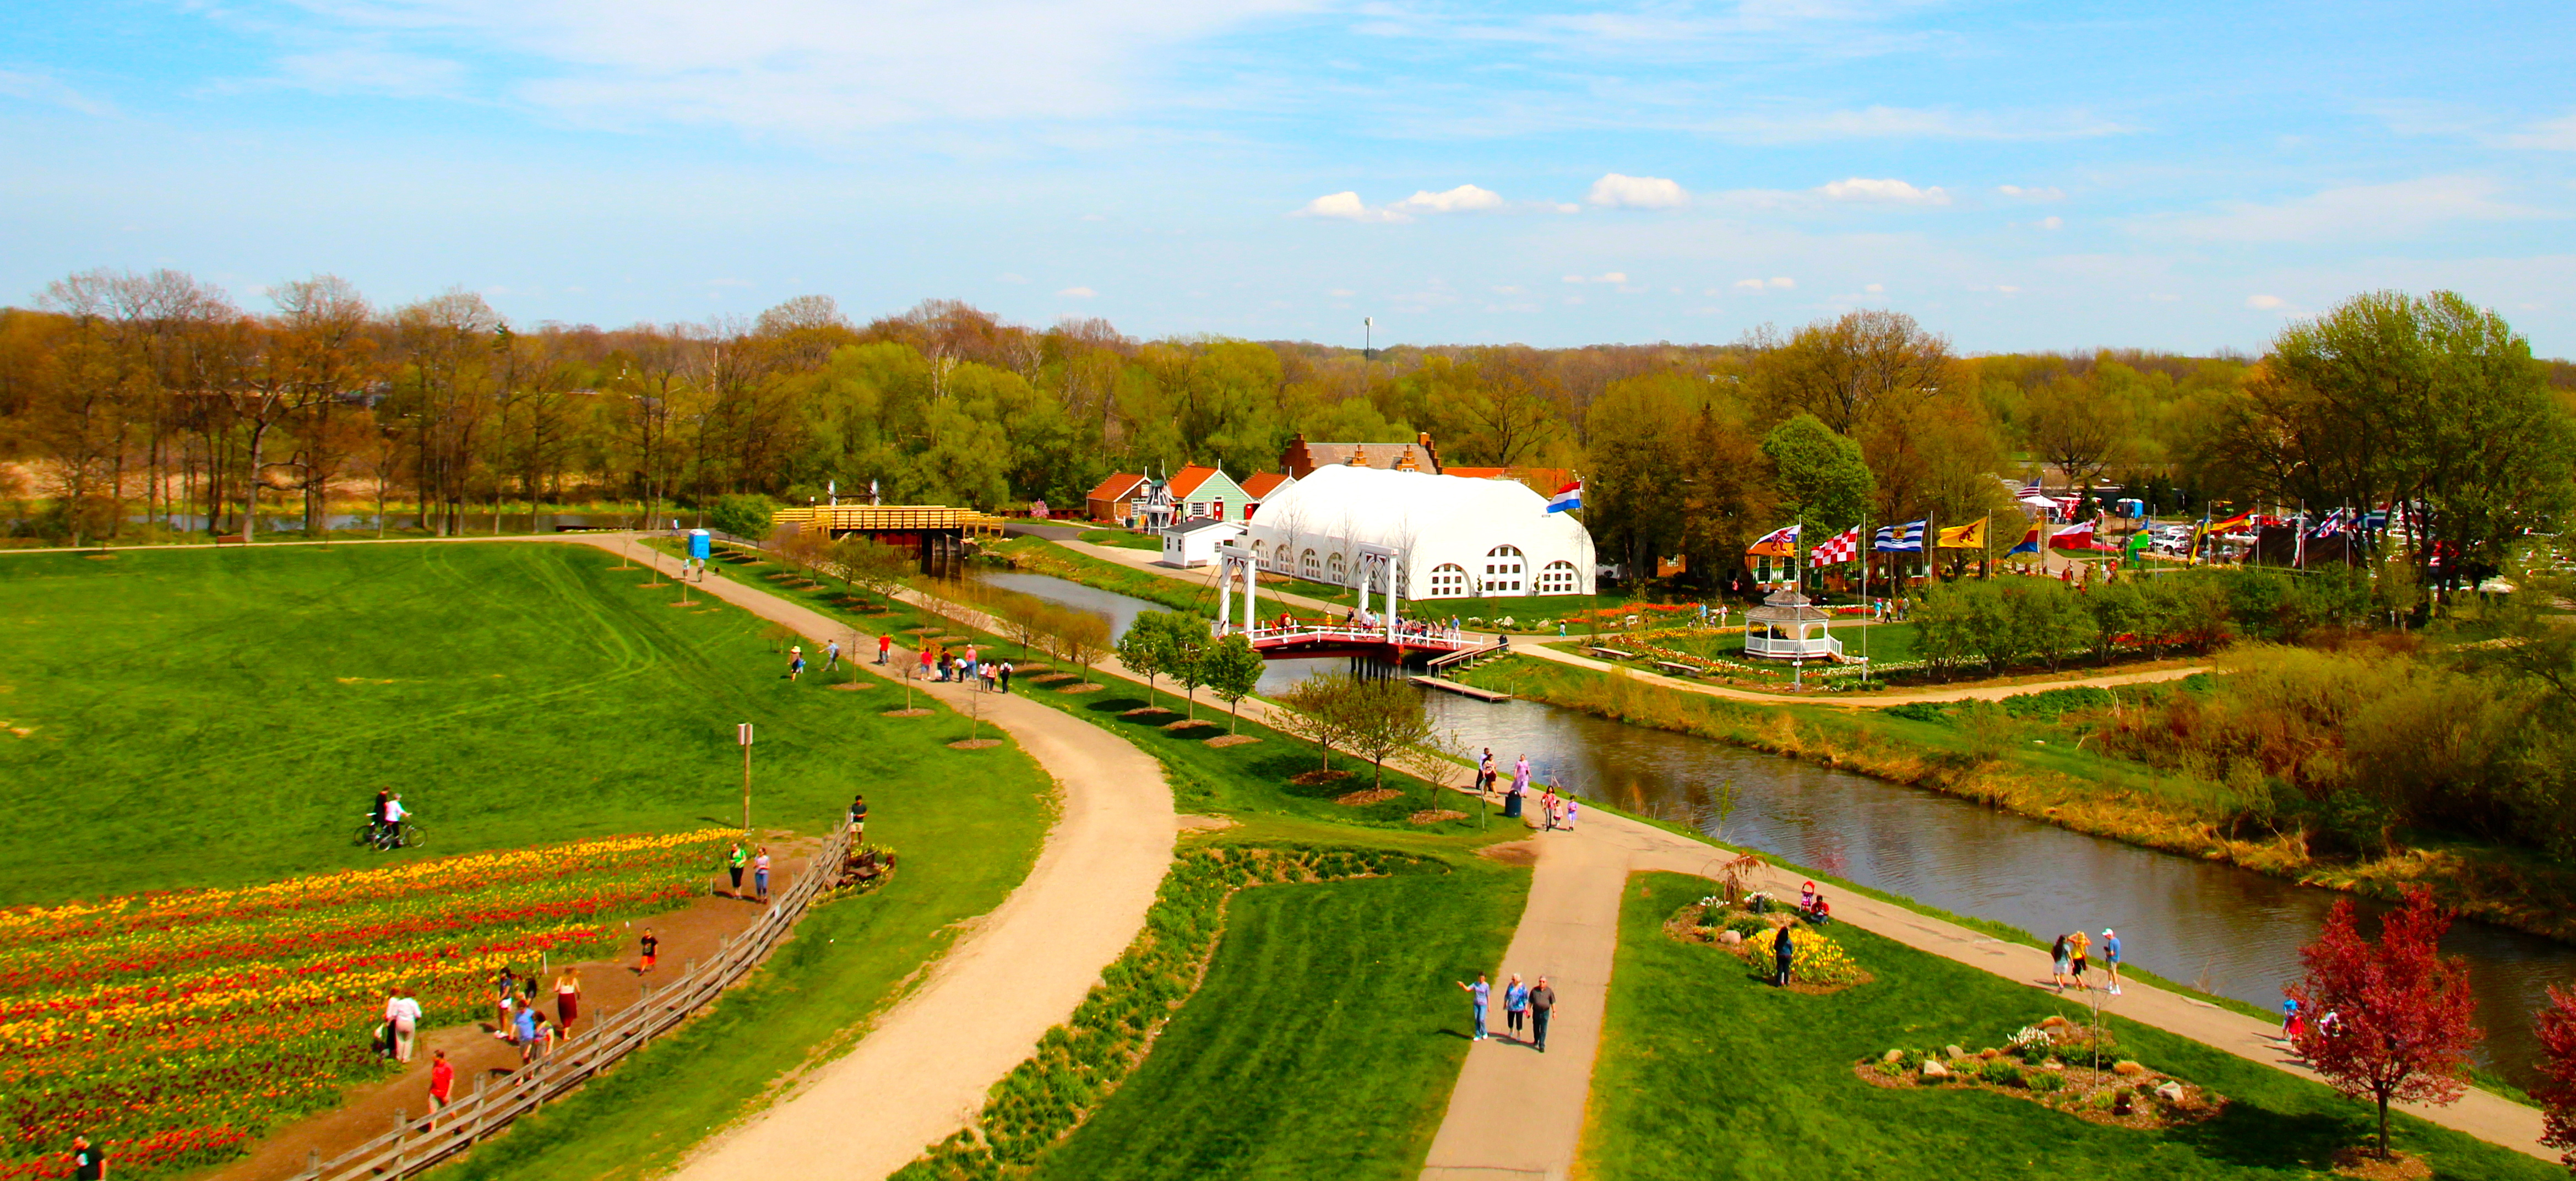 Windmill island gardens tulip time festival pictures of for Tiny house holland michigan